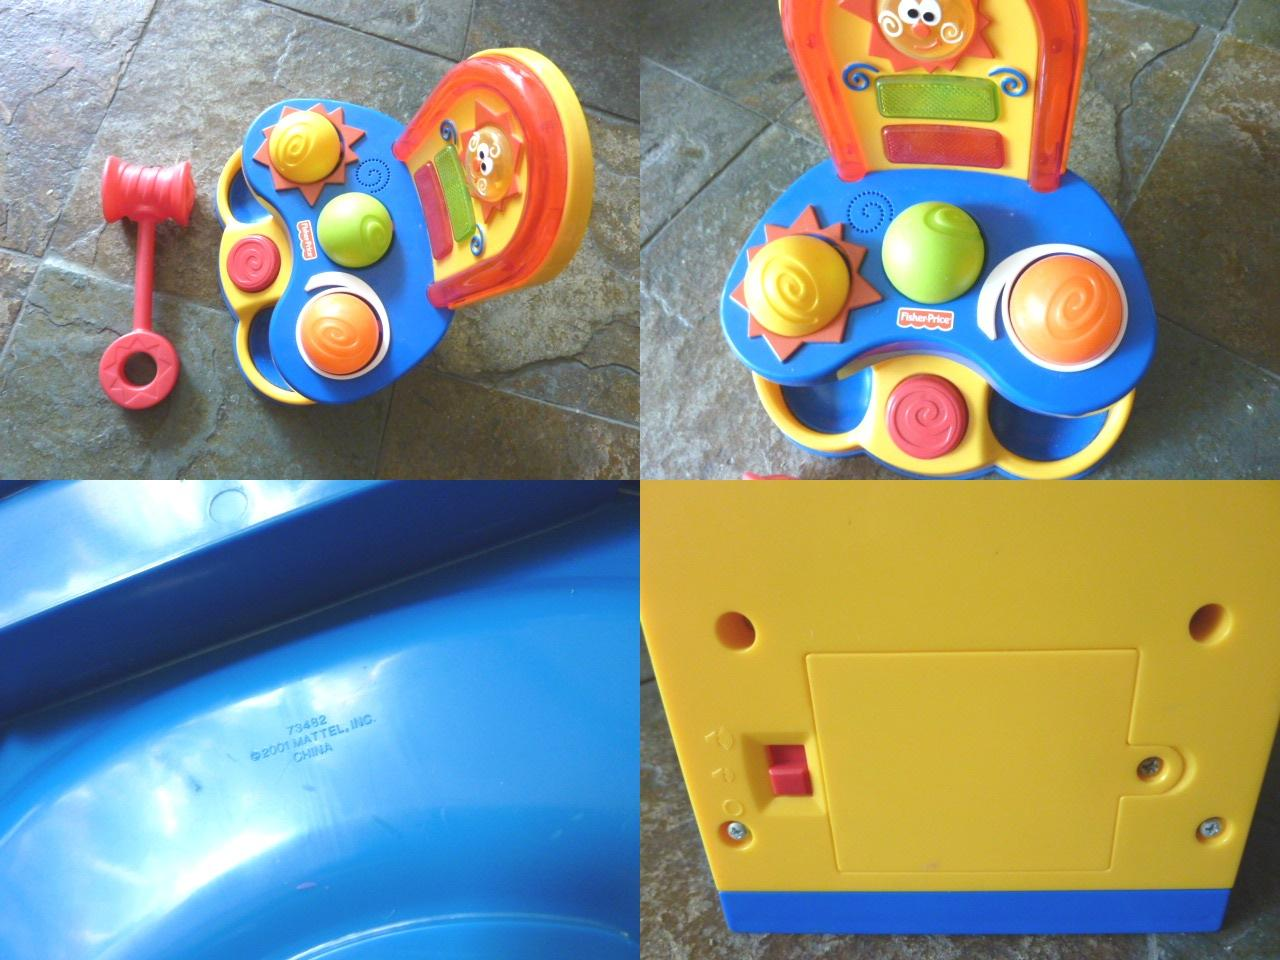 Toys for toddlers shop malaysia location